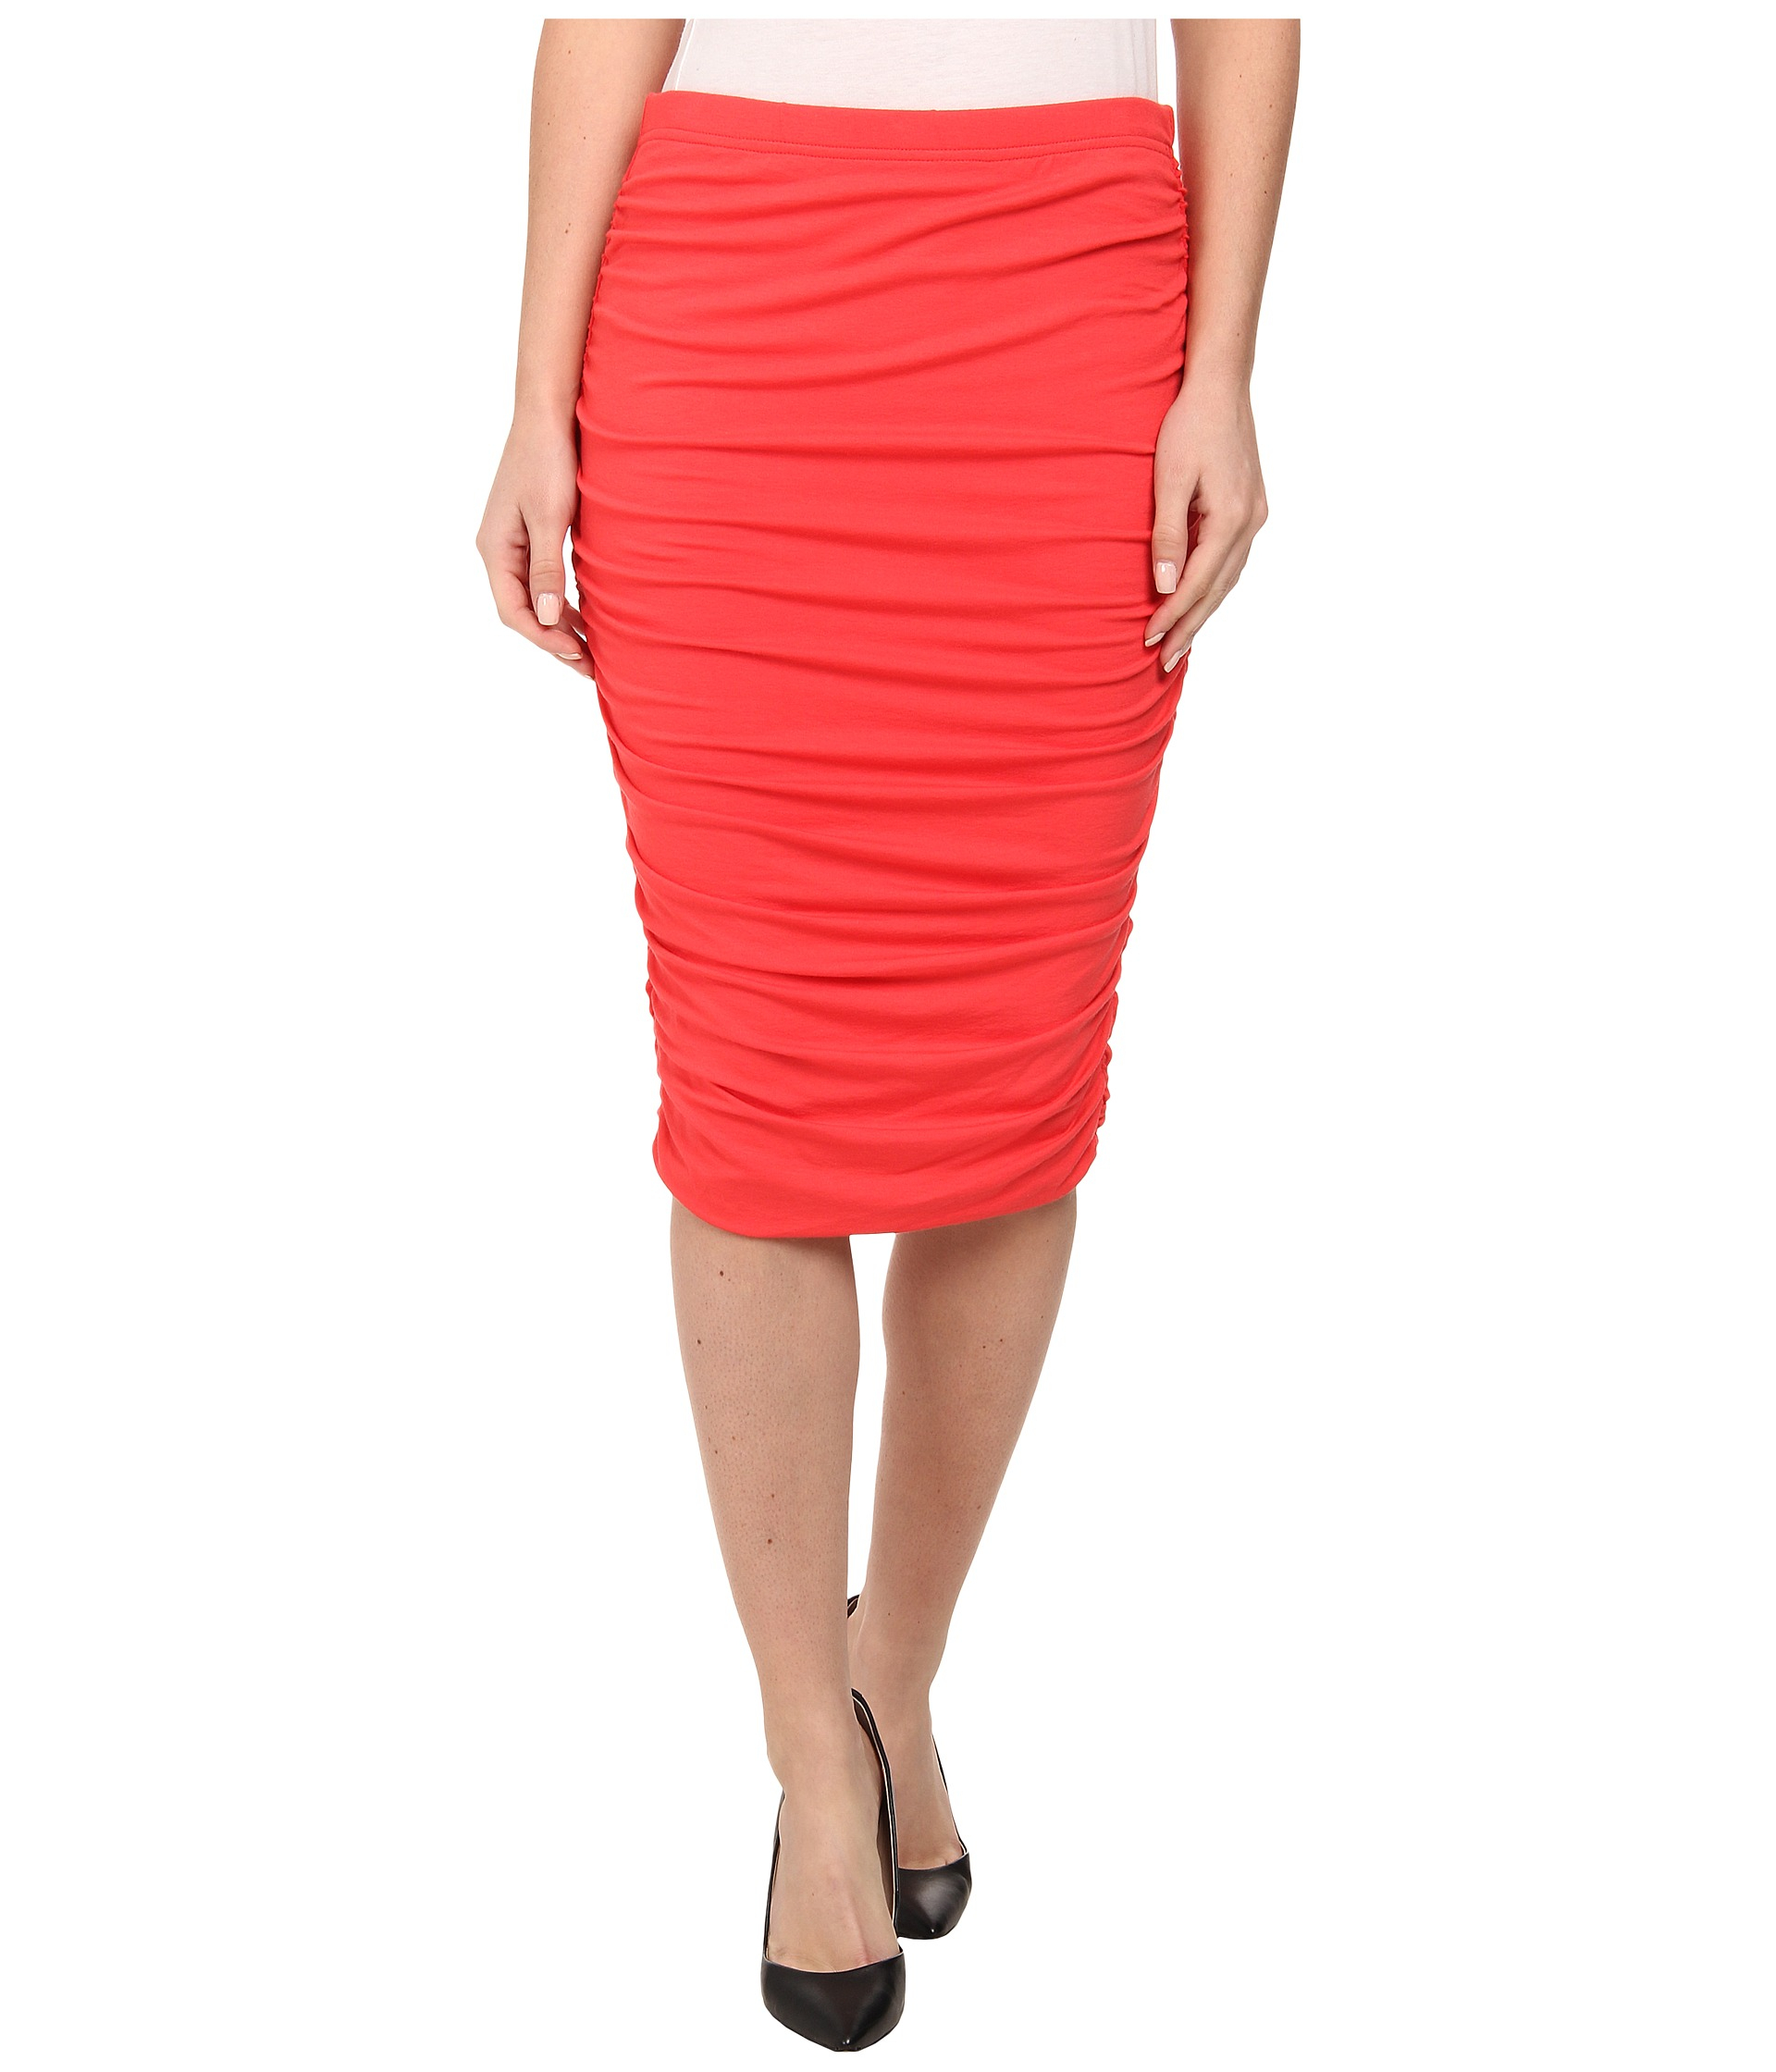 0459ece69d6d7 Lyst - Vince Camuto Ruched Midi Tube Skirt in Red